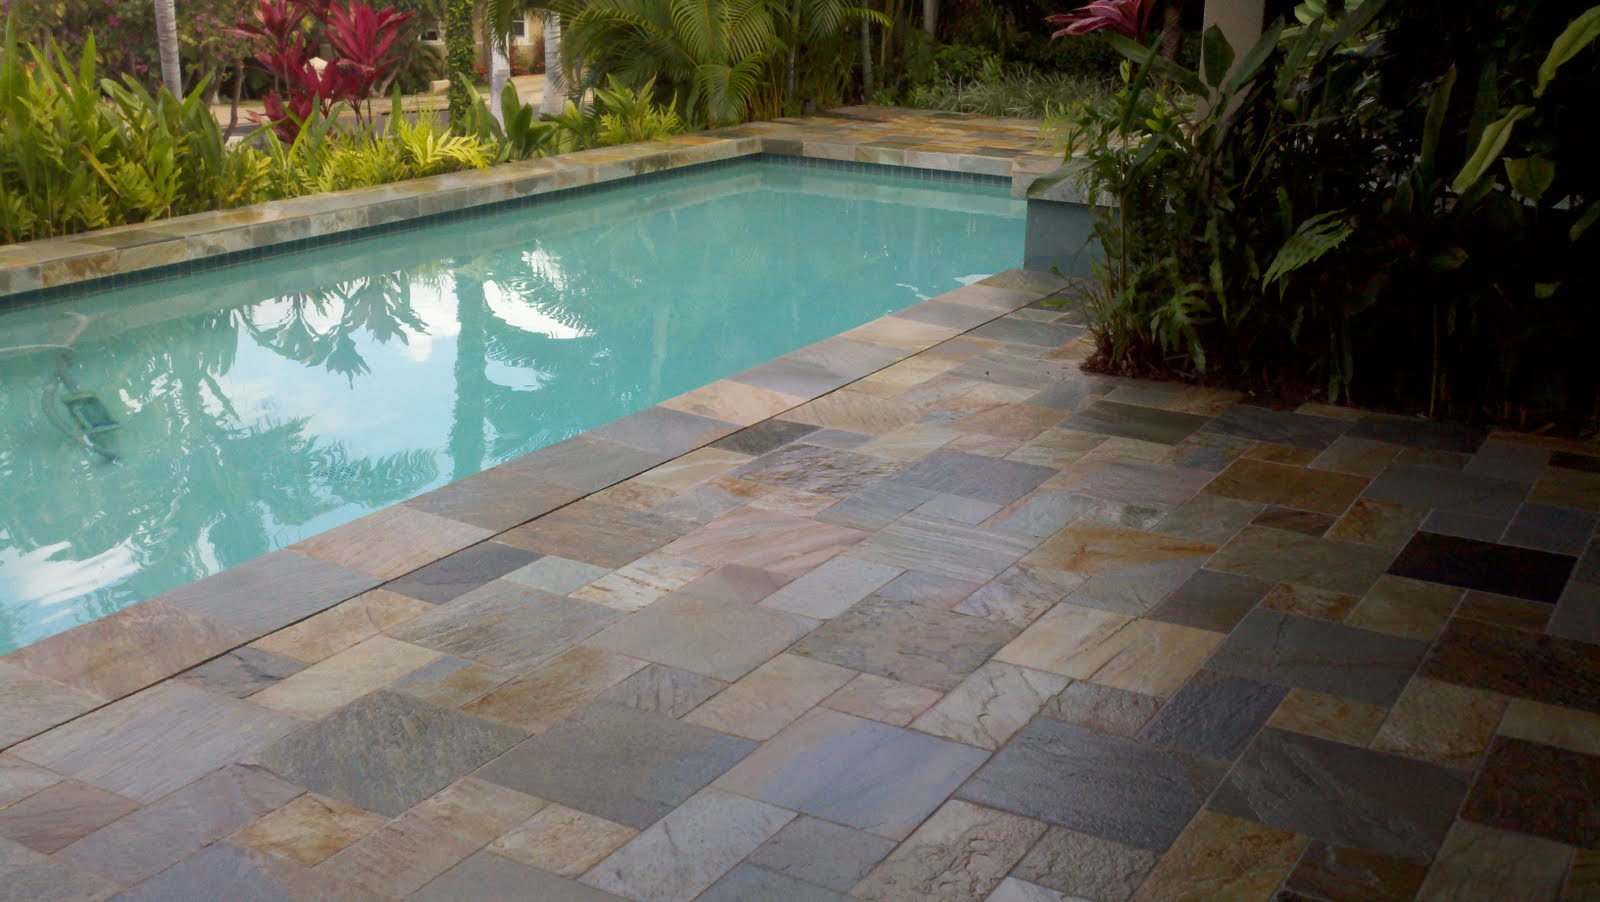 eurotech marble - stone - tile care maui,hawaii (808)877-0222